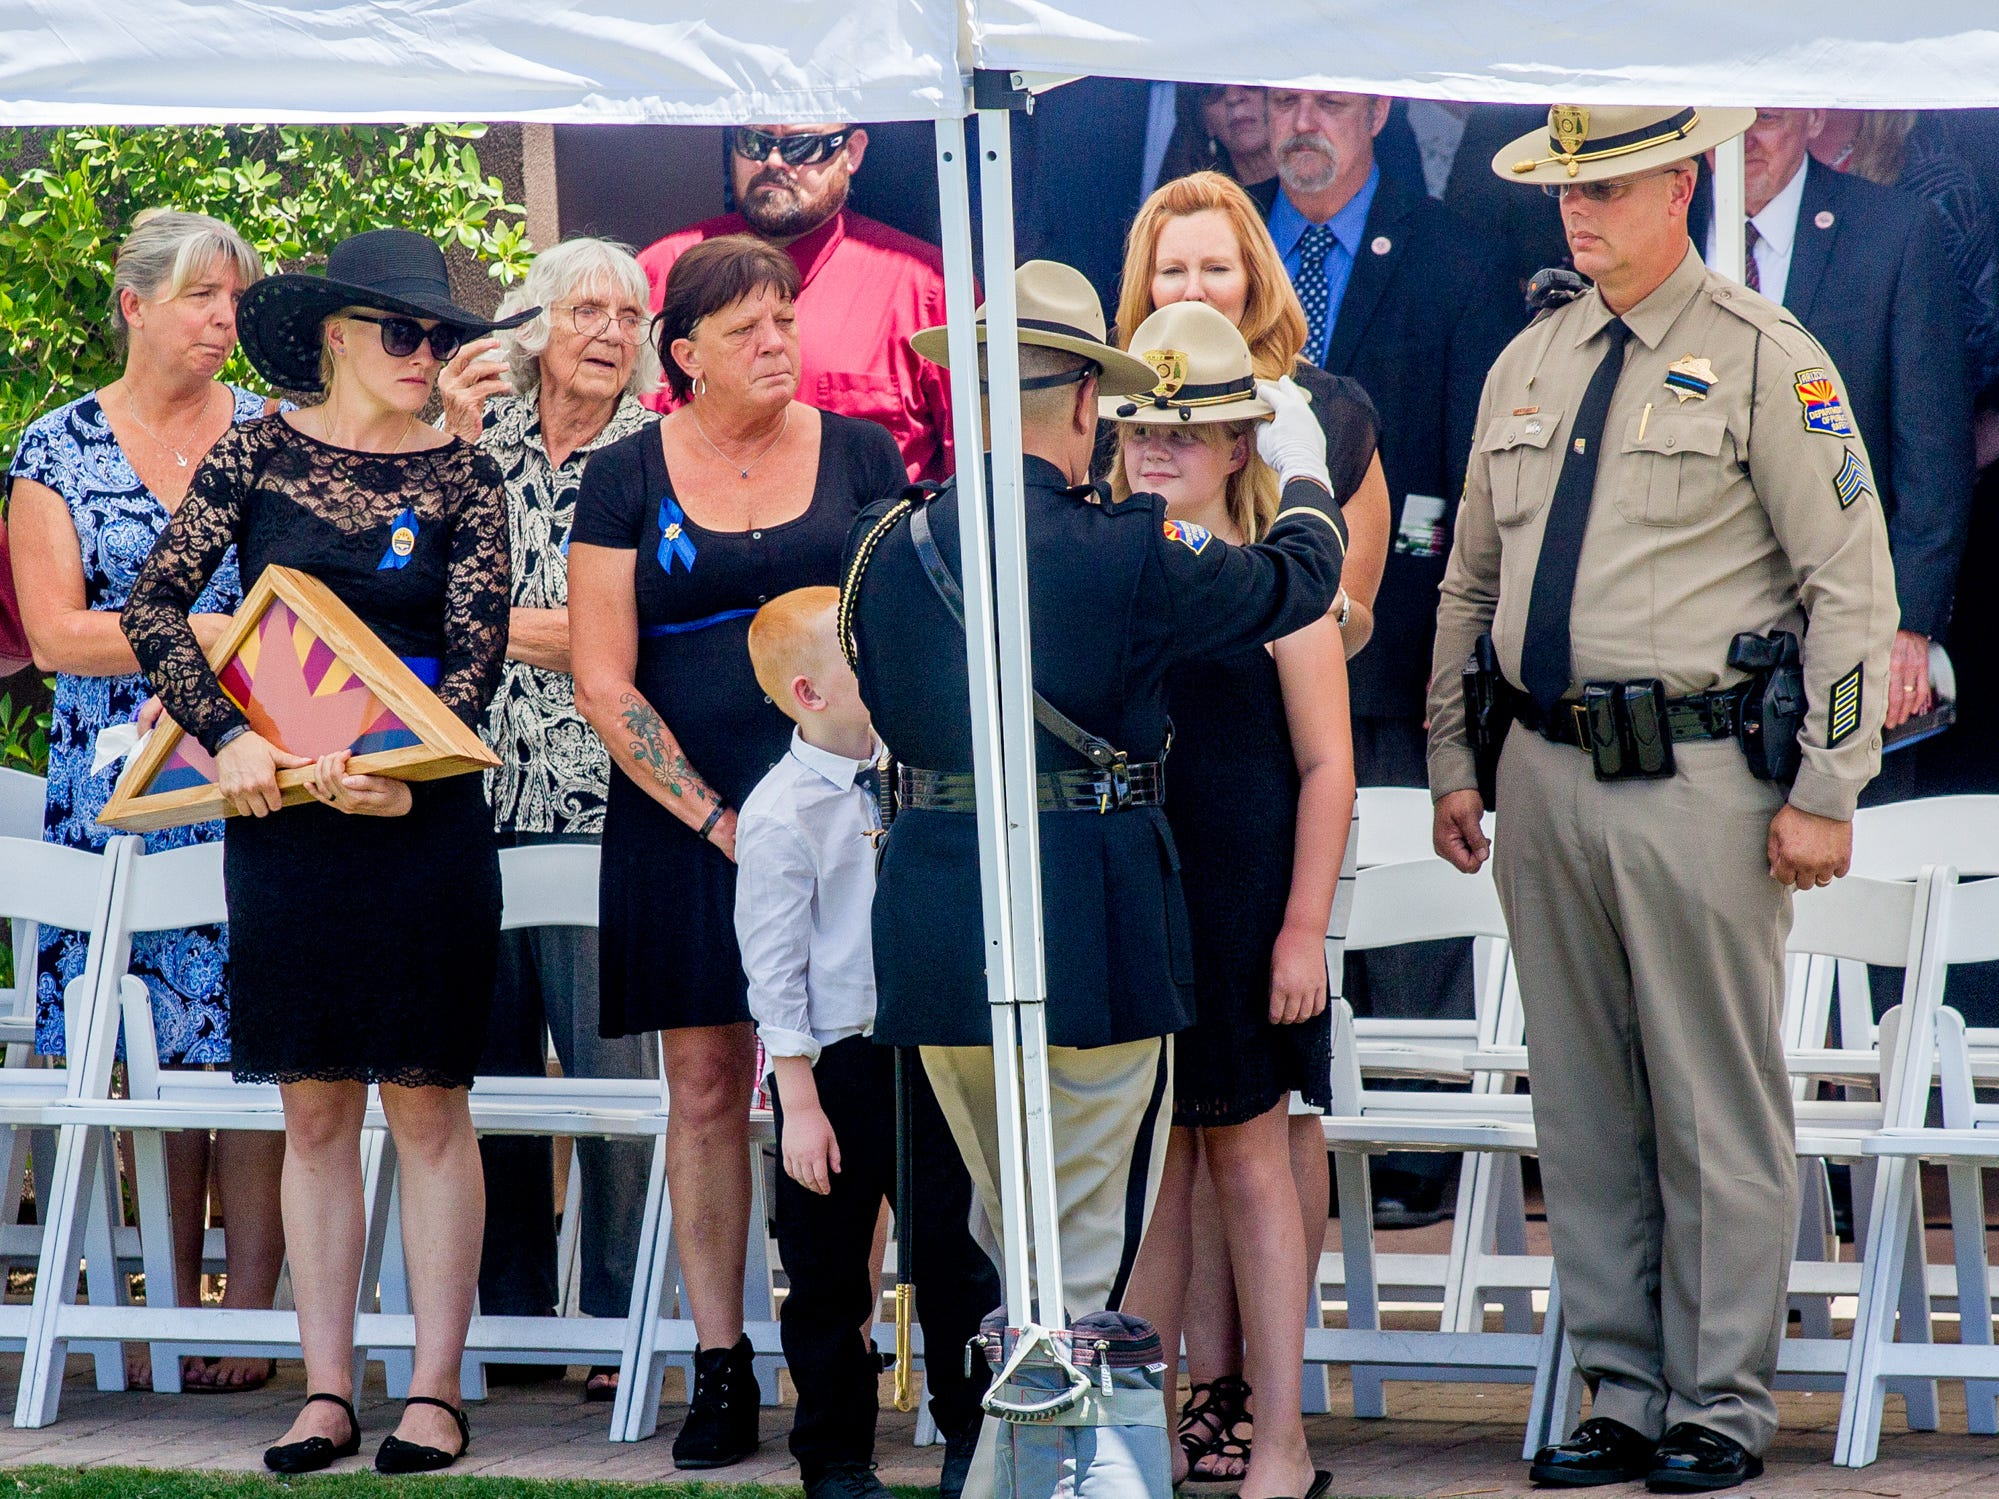 A DPS trooper gives fallen Trooper Tyler Edenhofer's hat to his family and friends on Aug. 3, 2018, during Tyler's funeral at Christ's Church of the Valley in Peoria.